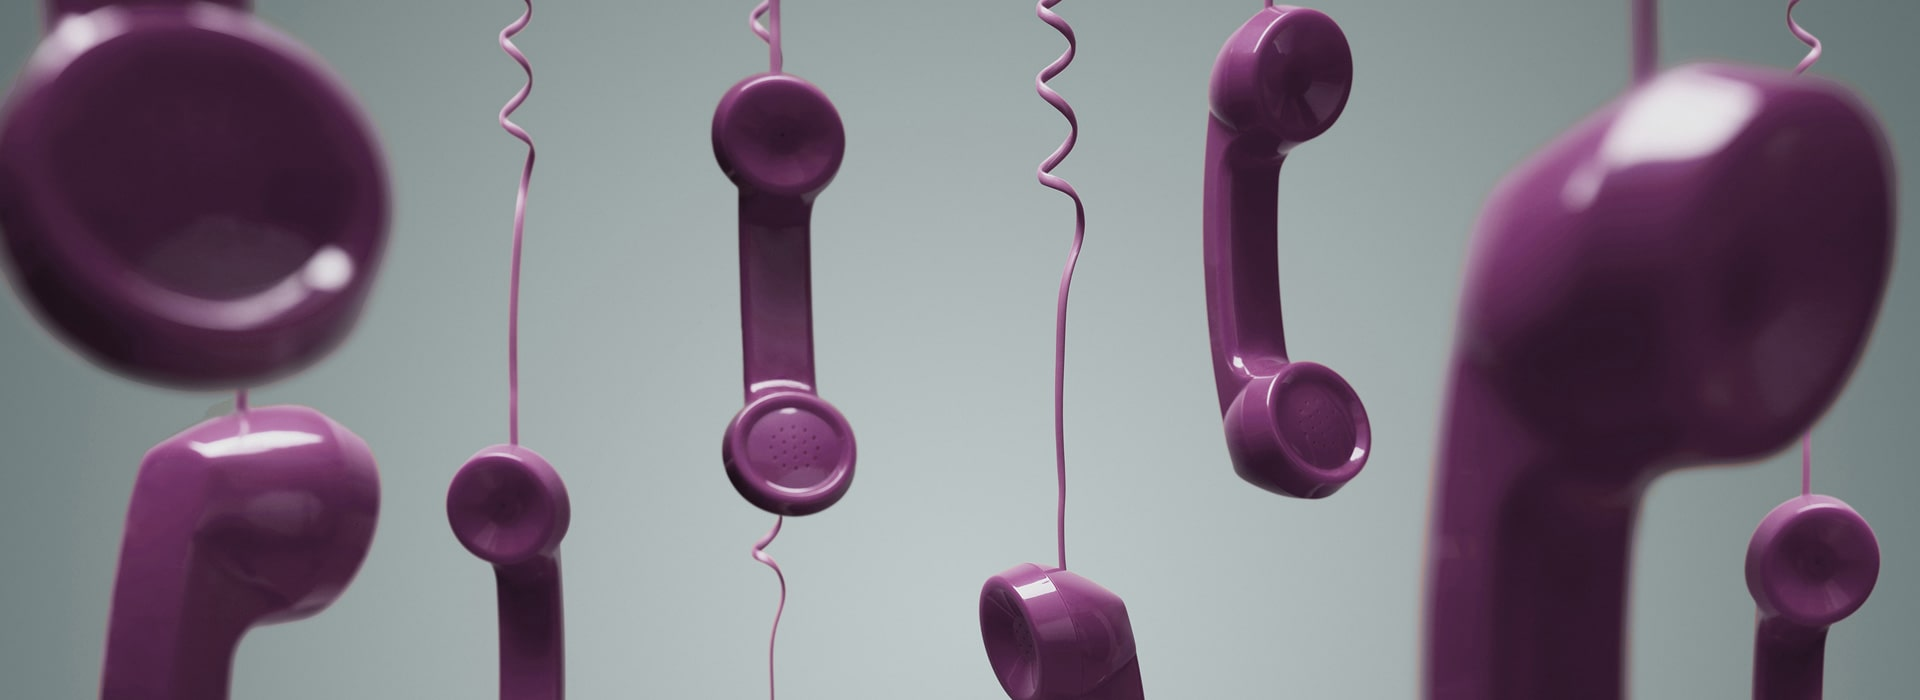 Purple colour hanging telephone handsets